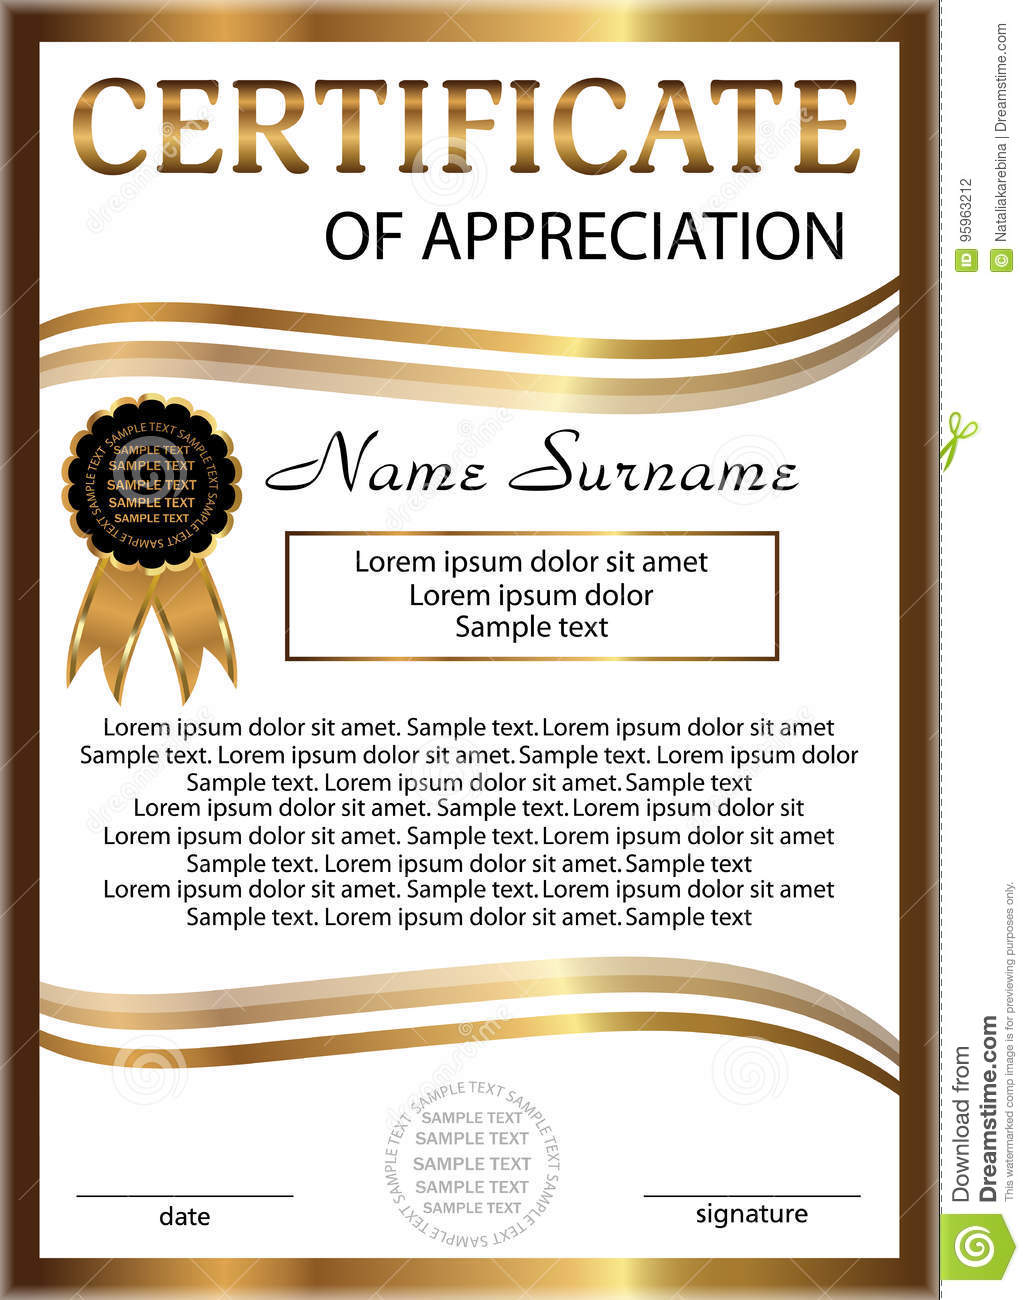 Certificate Appreciation Golden Template Vertical